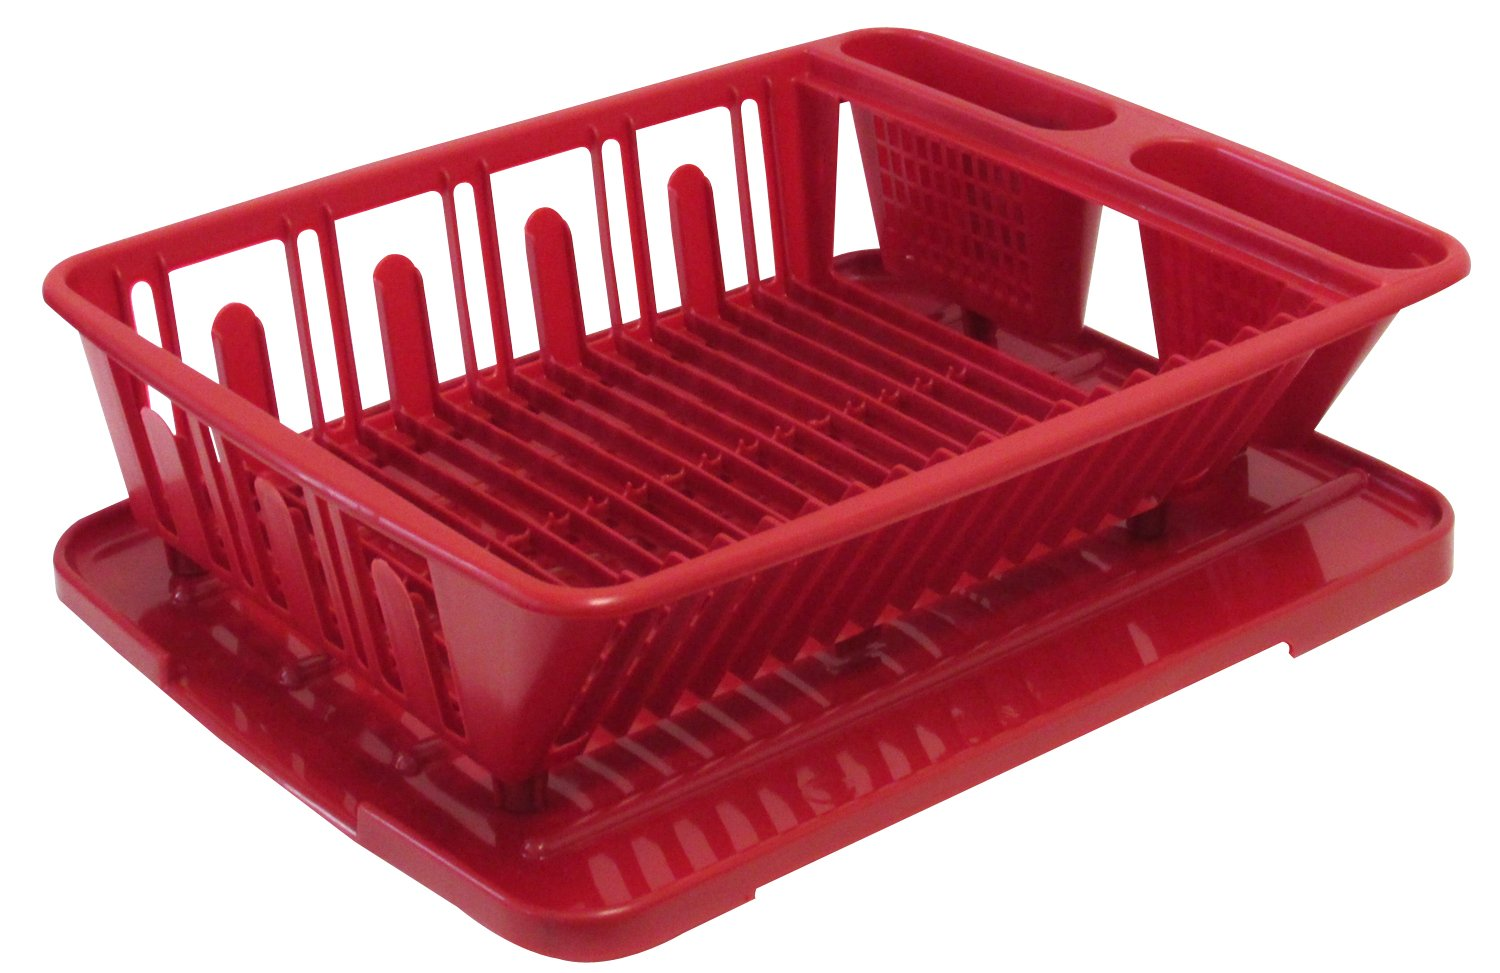 United solutions sk0030 two piece dish rack and drain board set in red 2 piece l ebay - Dish racks for small spaces set ...